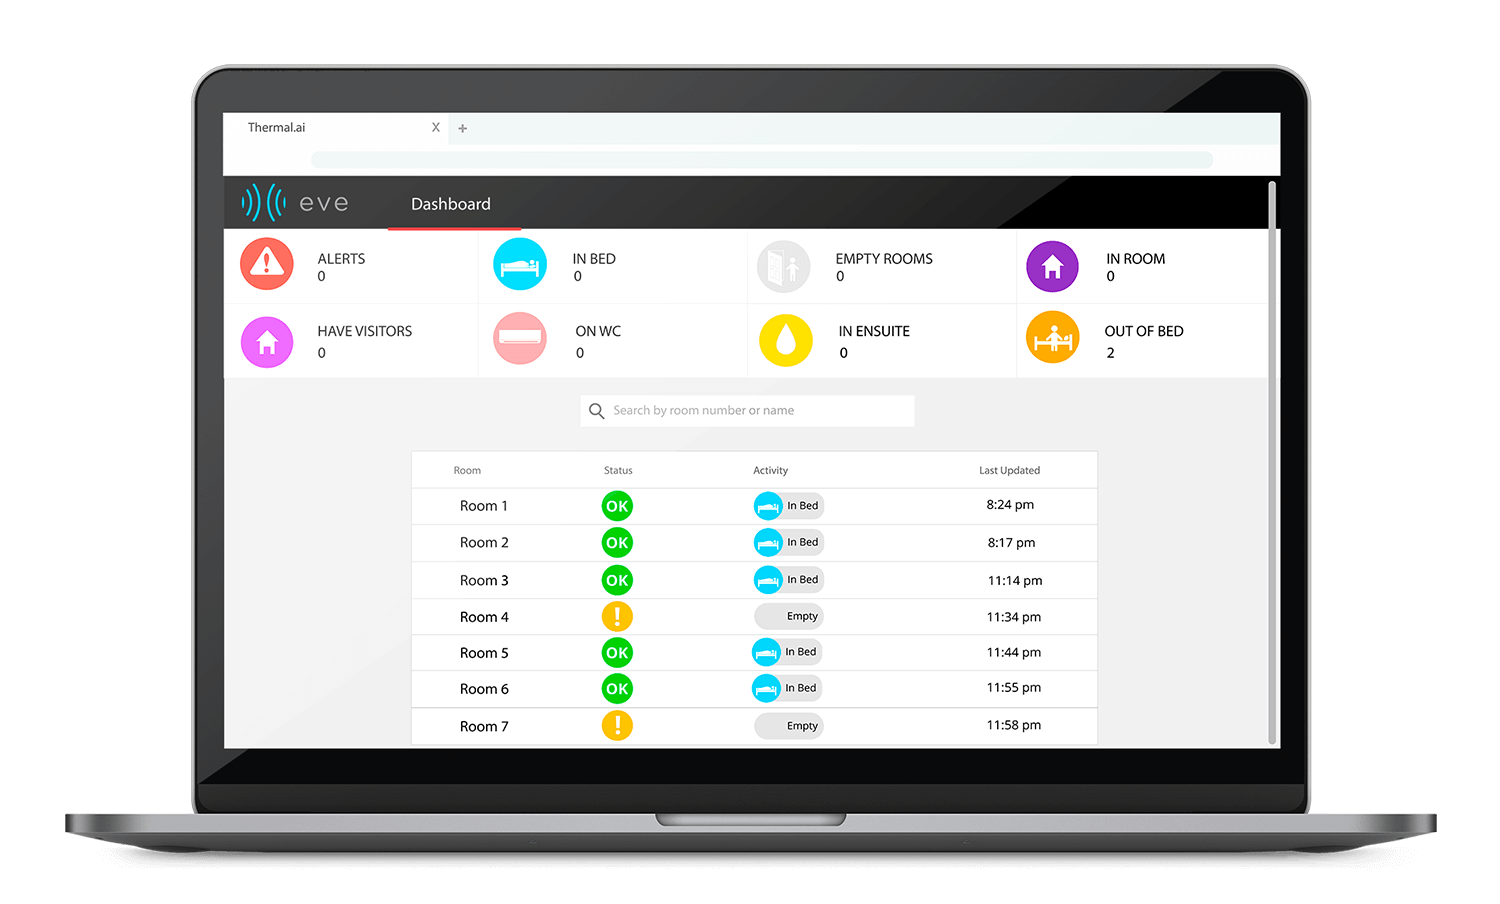 Eve establishes a centralised information and communications platform for transparency in quality of care. - The dashboard presents carers with wellness summaries by collecting residents' unique routine and behavioural patterns to support a Proactive Care model.